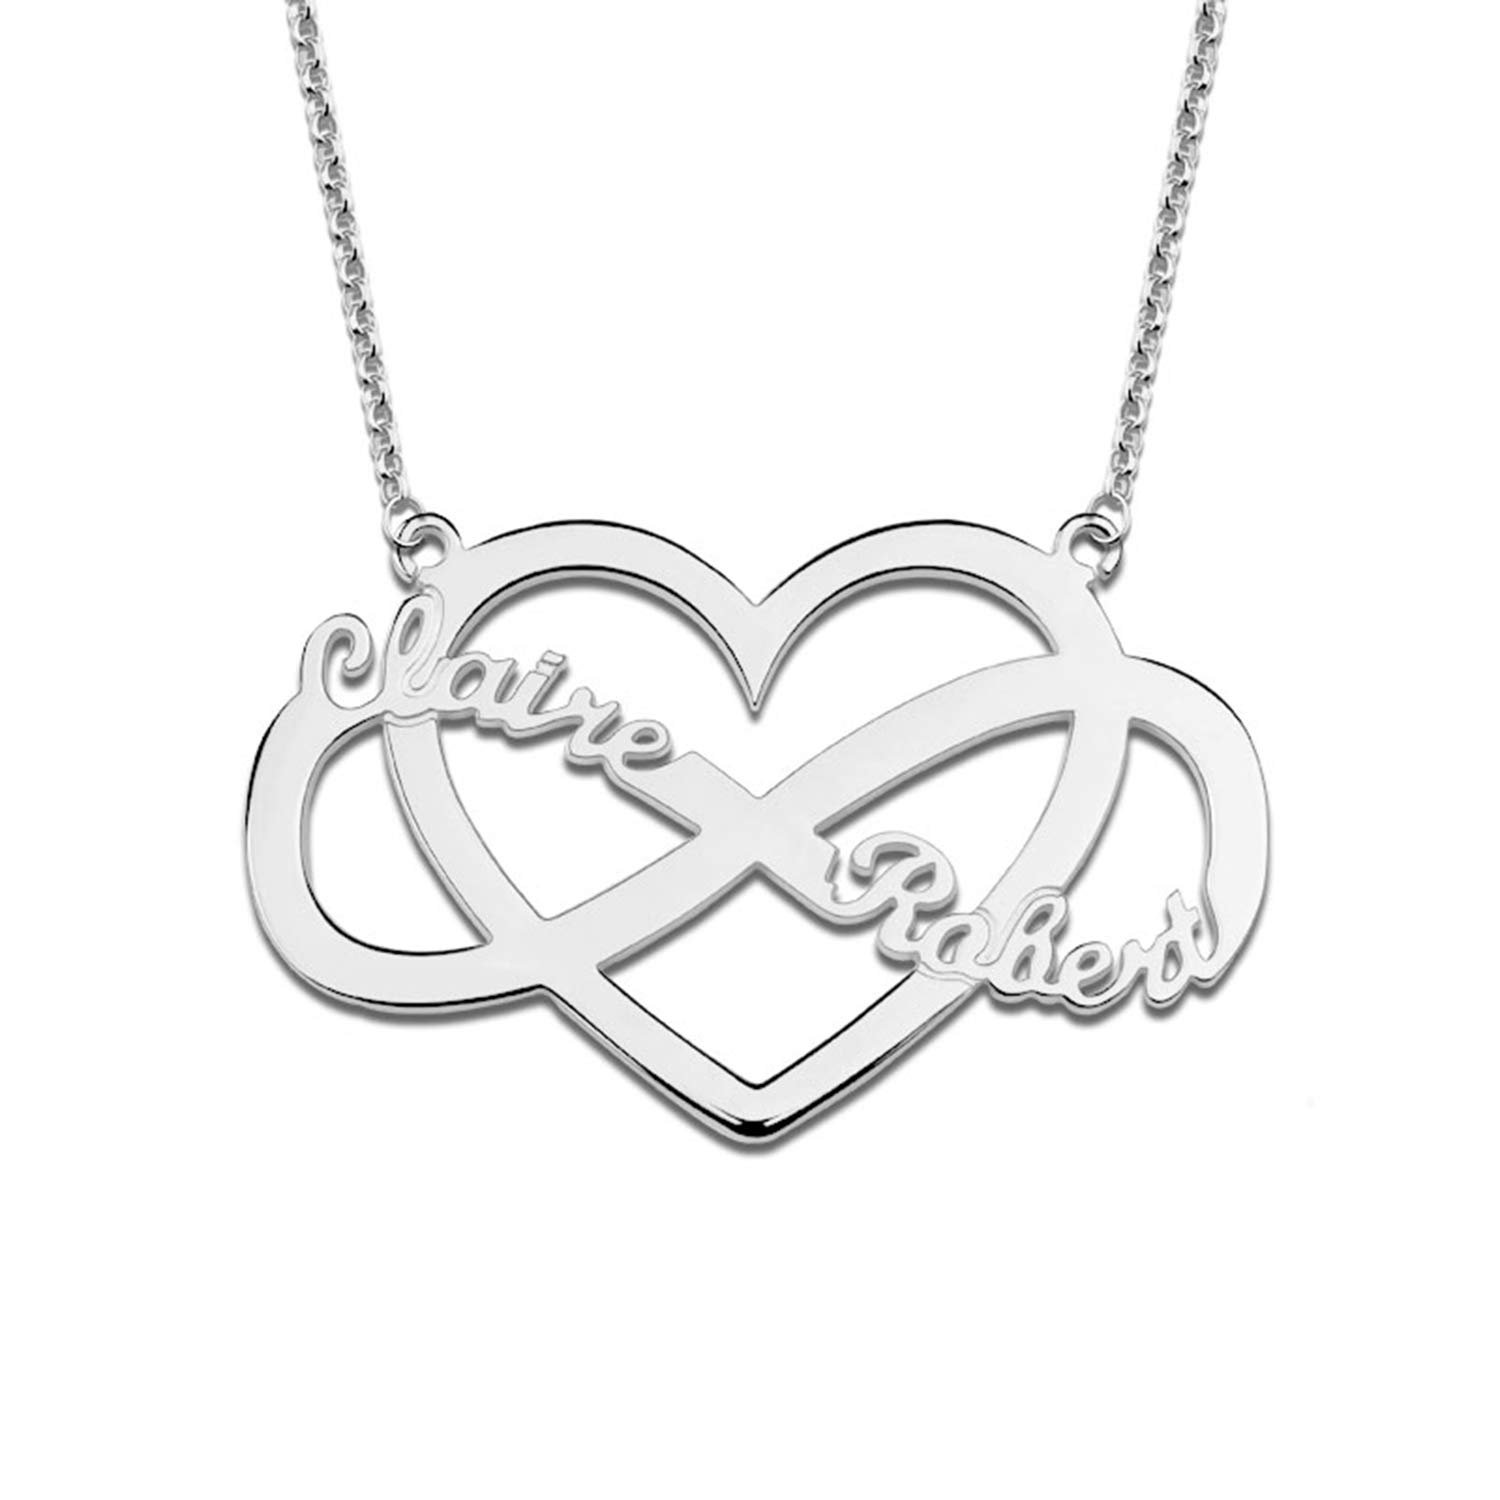 "LONAGO 925 Sterling Silver Personalized Name Necklace Heart Infinty Interlocking Necklace with Engraving Any Two Names Adjustable 16/""-20/"""